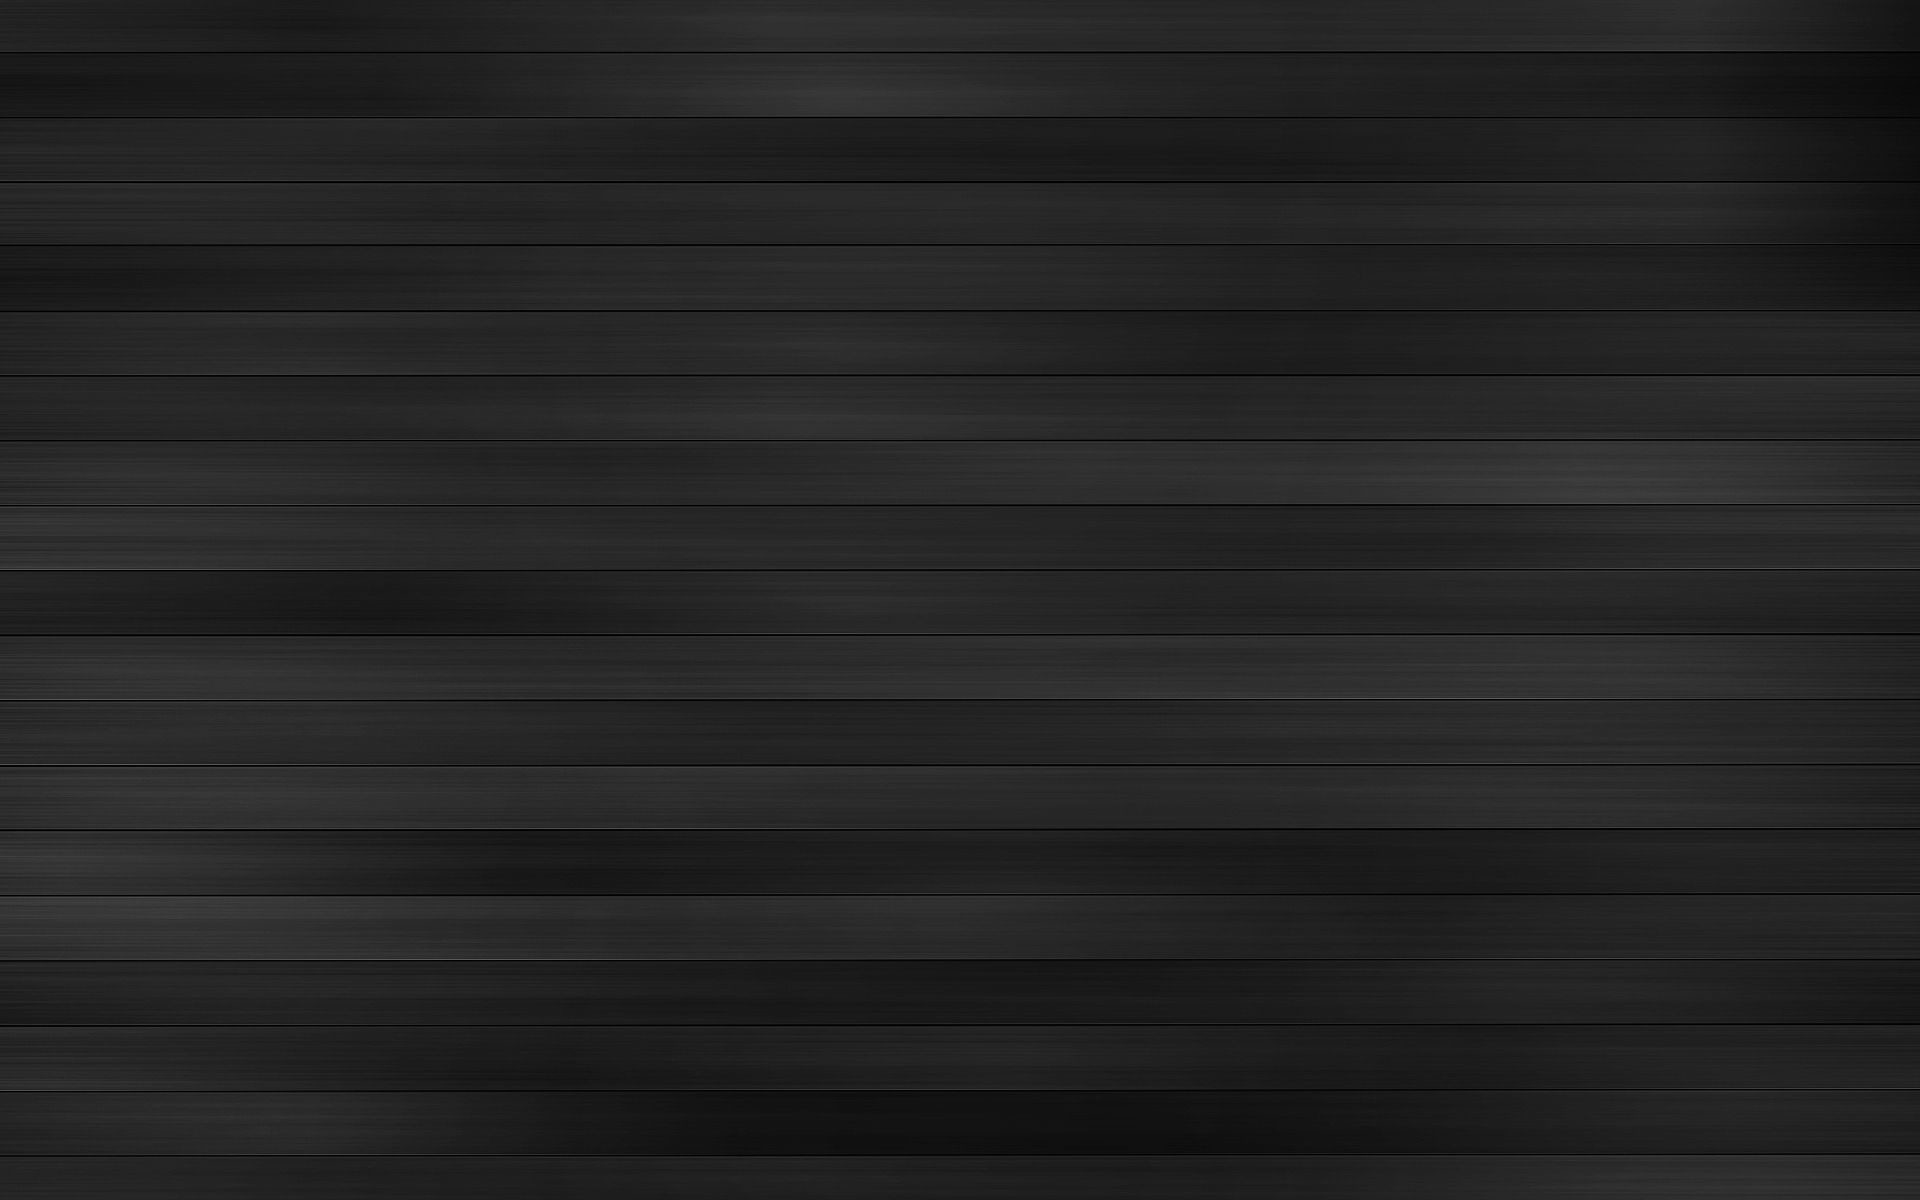 Grey background wallpaper 65 images - Dark gray background ...